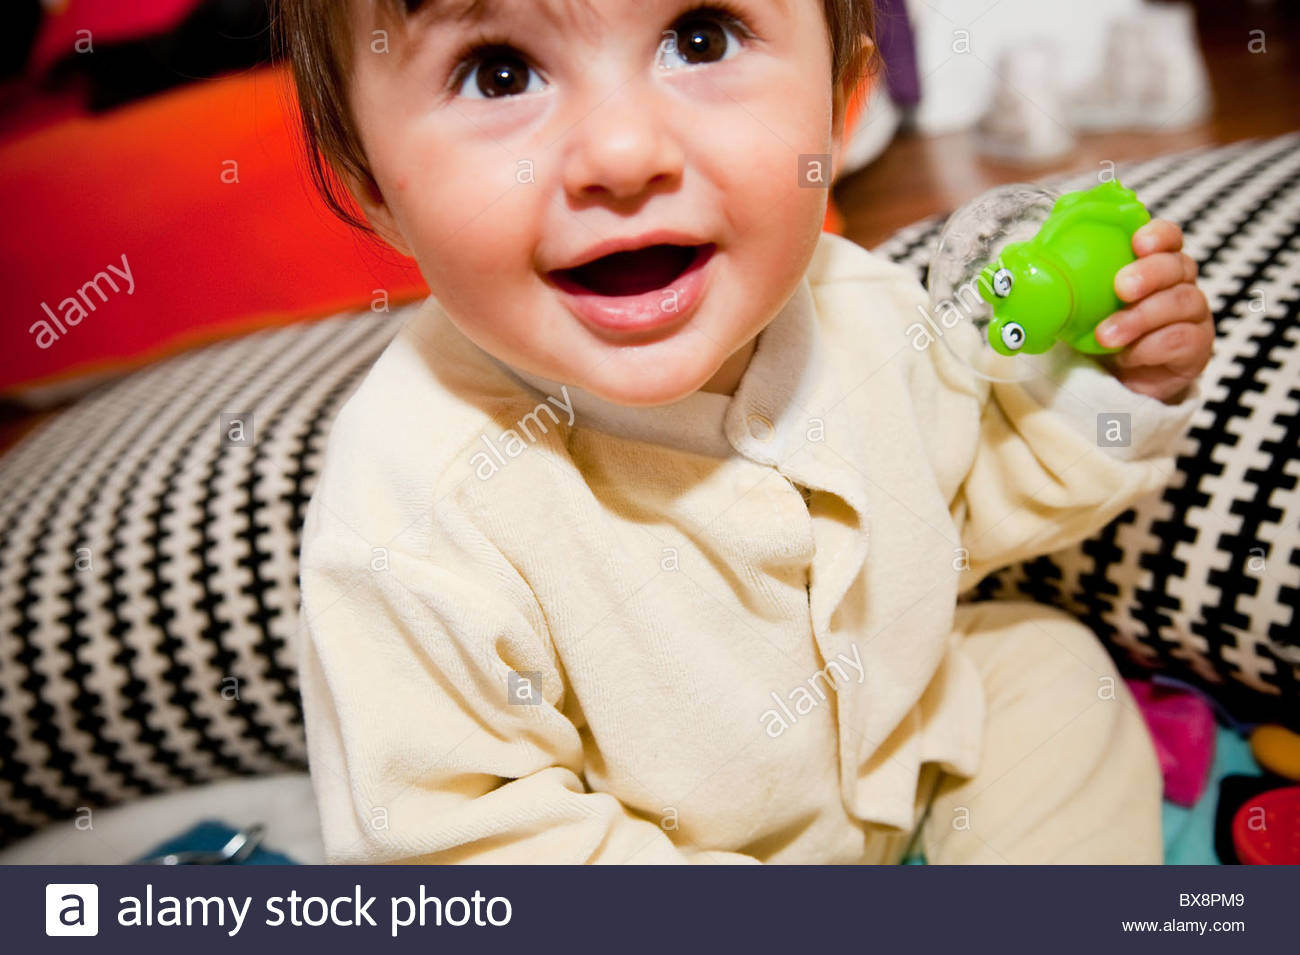 Baby girl holding a frog toy - Stock Image